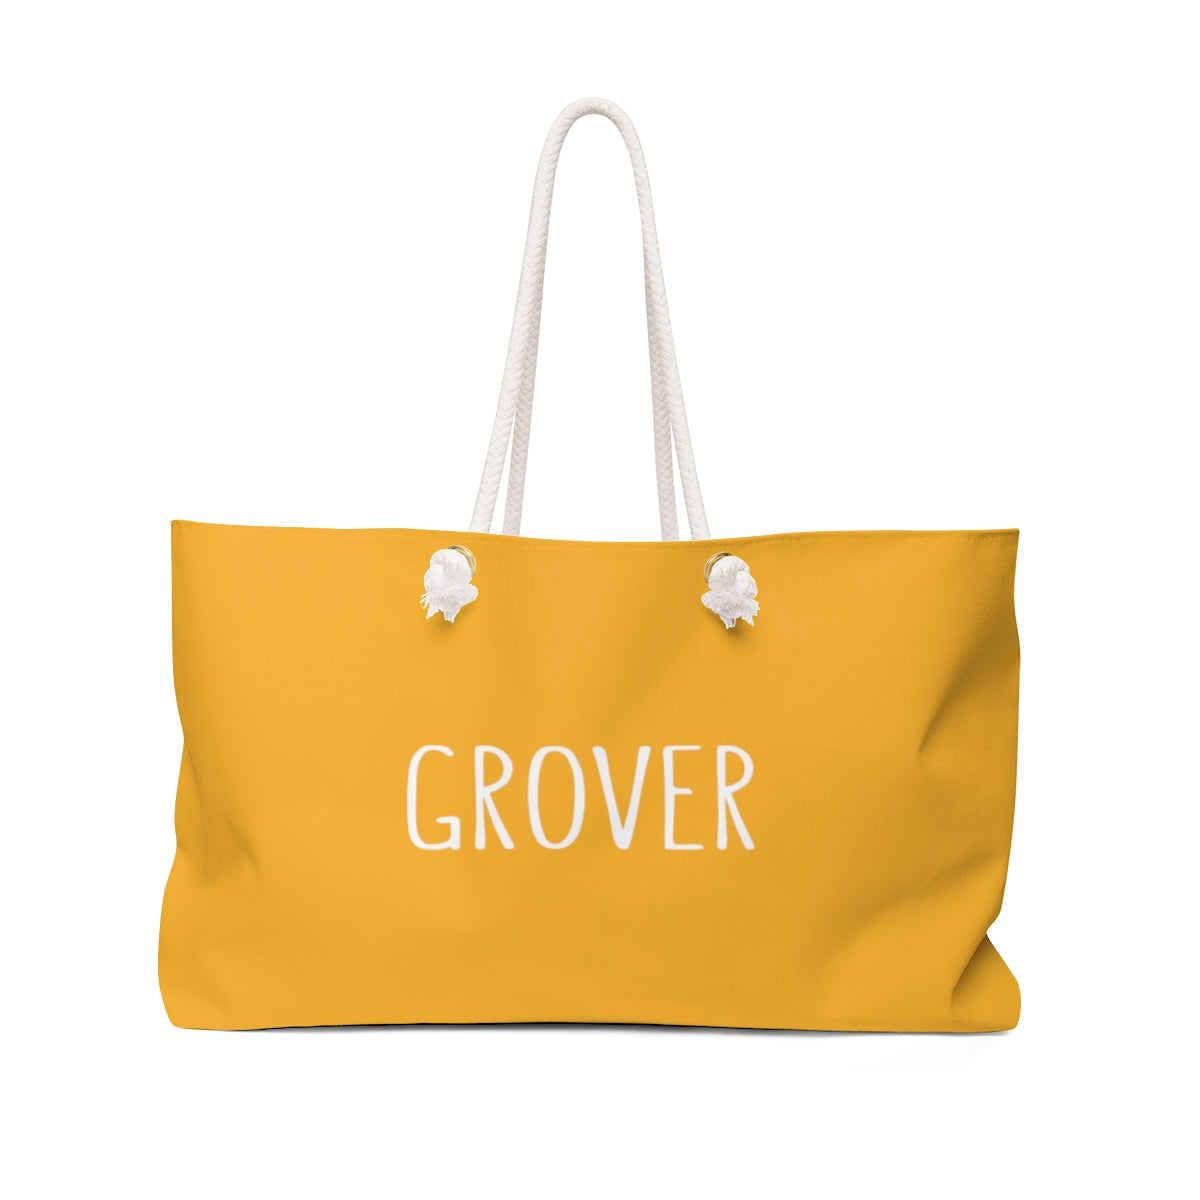 Grover Weekender Bag: Citrus